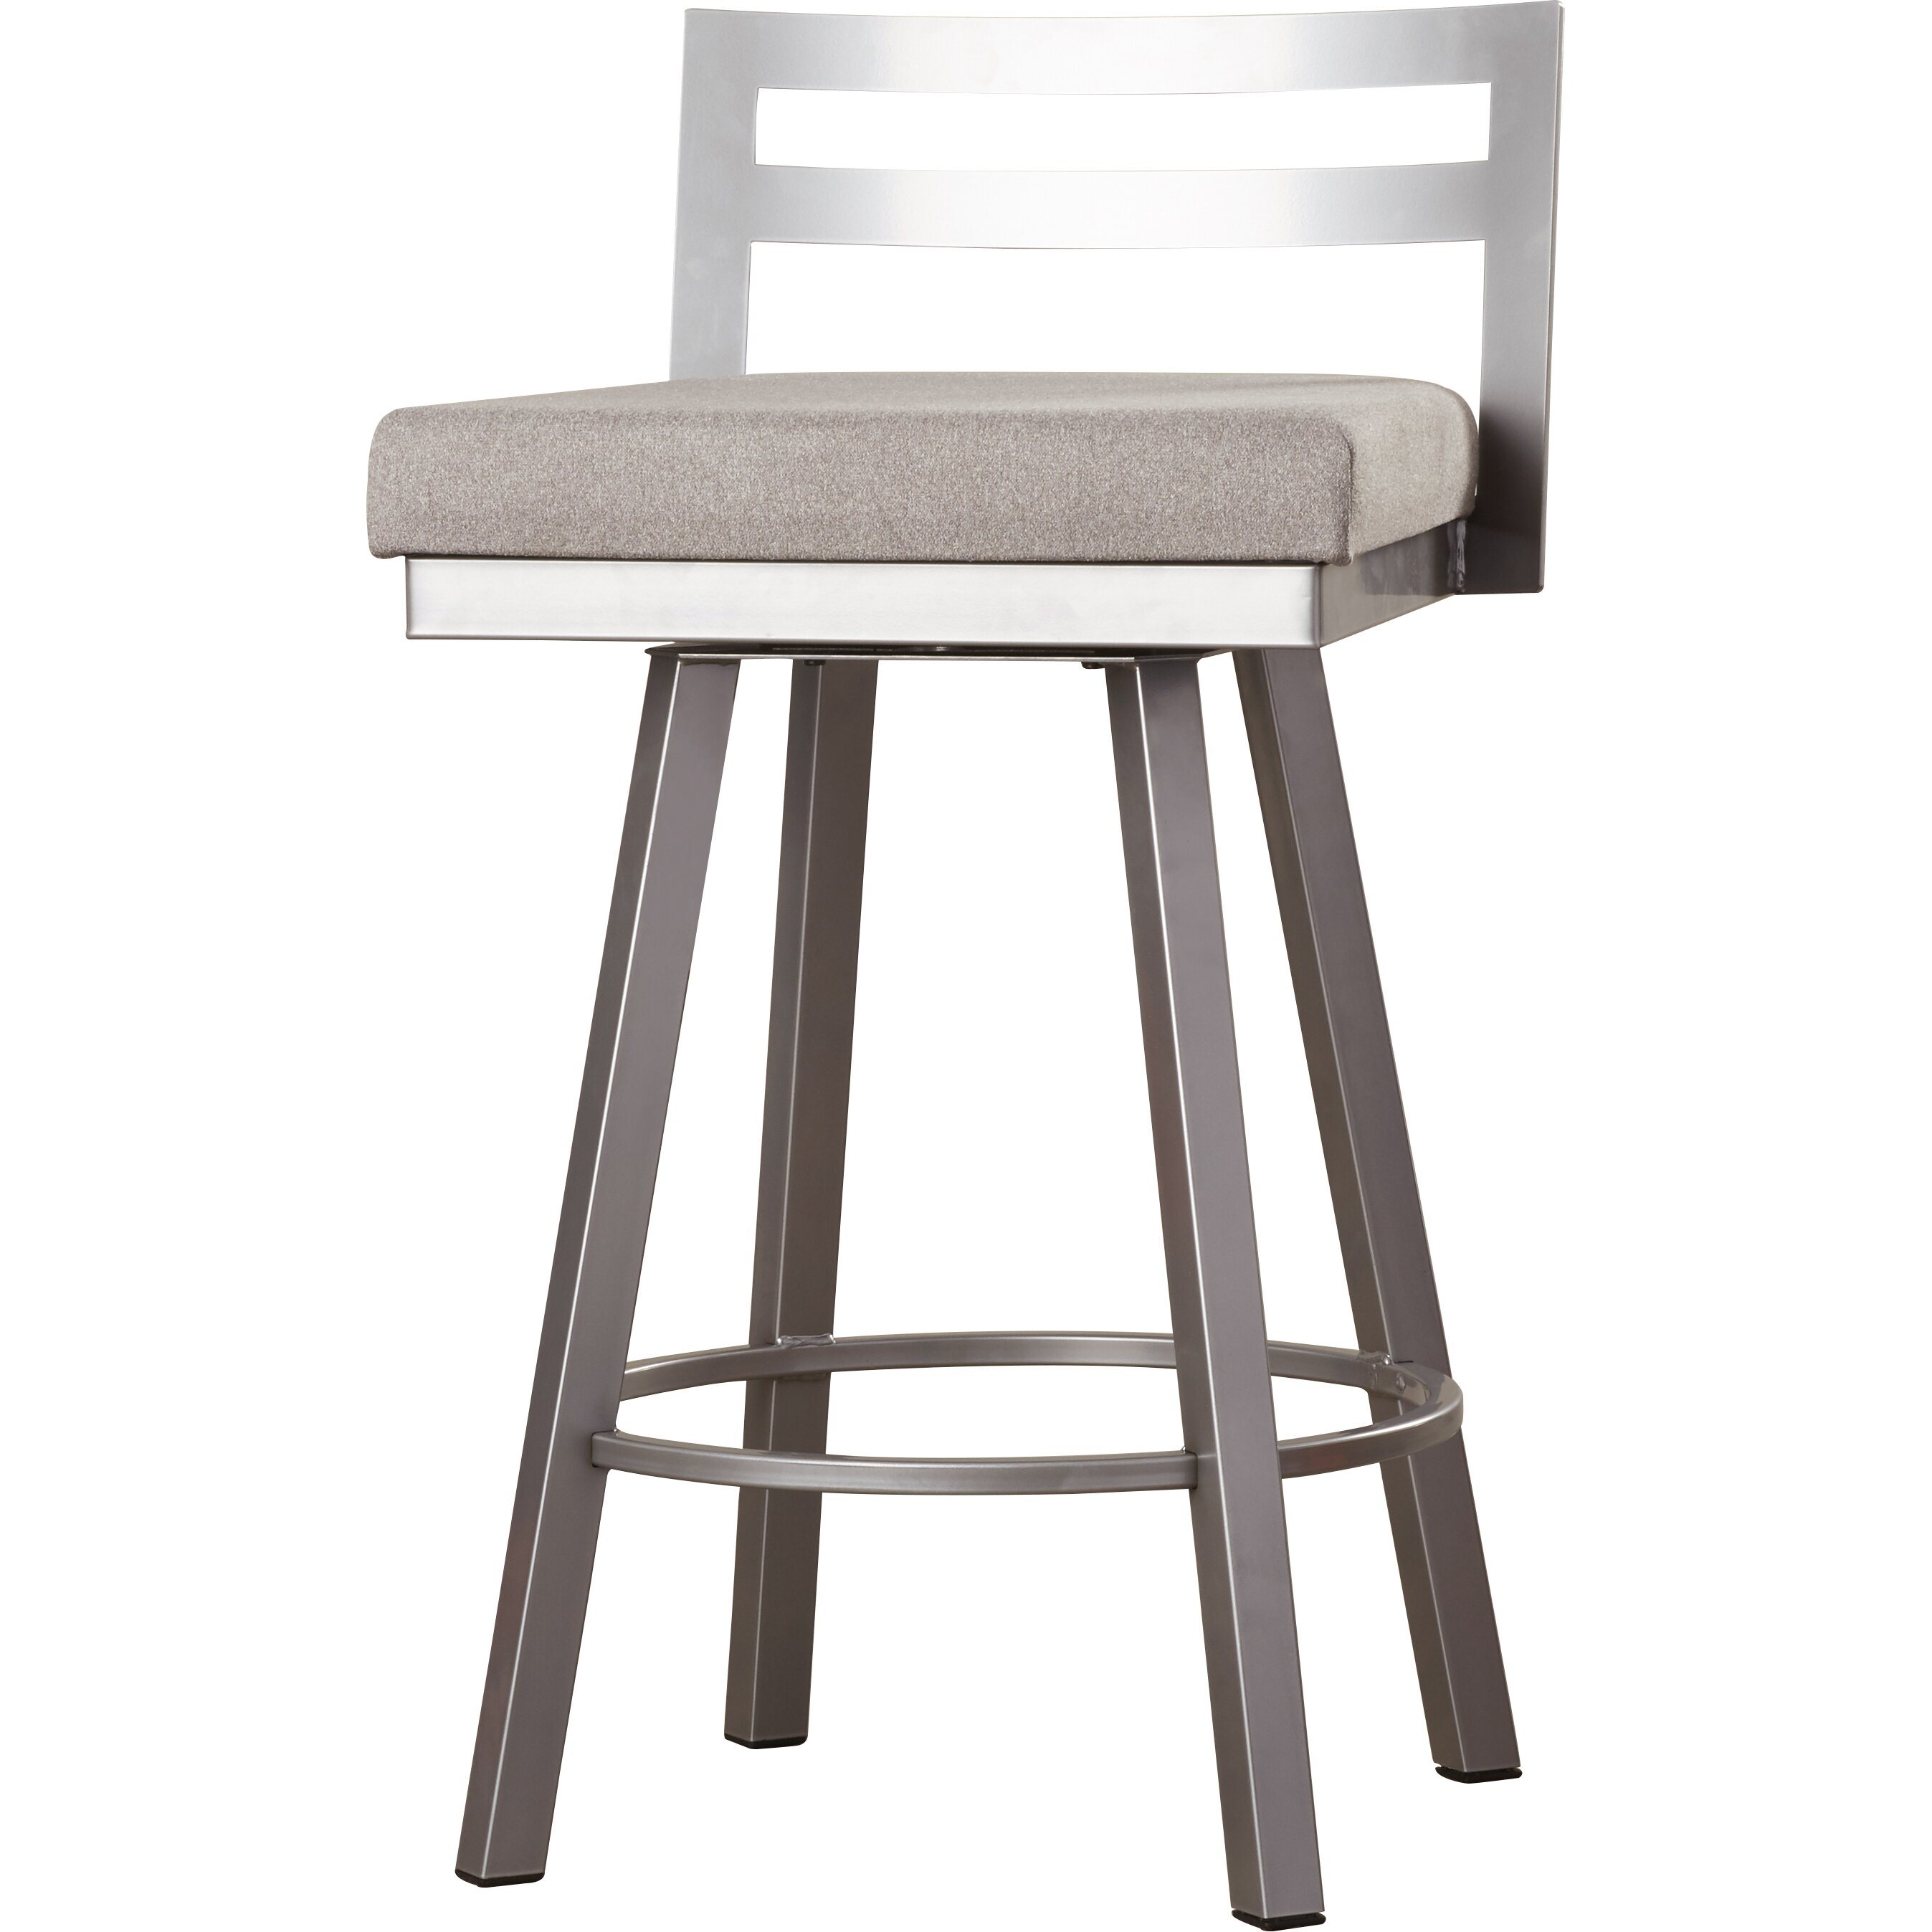 Fantastic Stool Office Chair Ra Skog Stool Ikea Nils Stool Ikea Alphanode Cool Chair Designs And Ideas Alphanodeonline